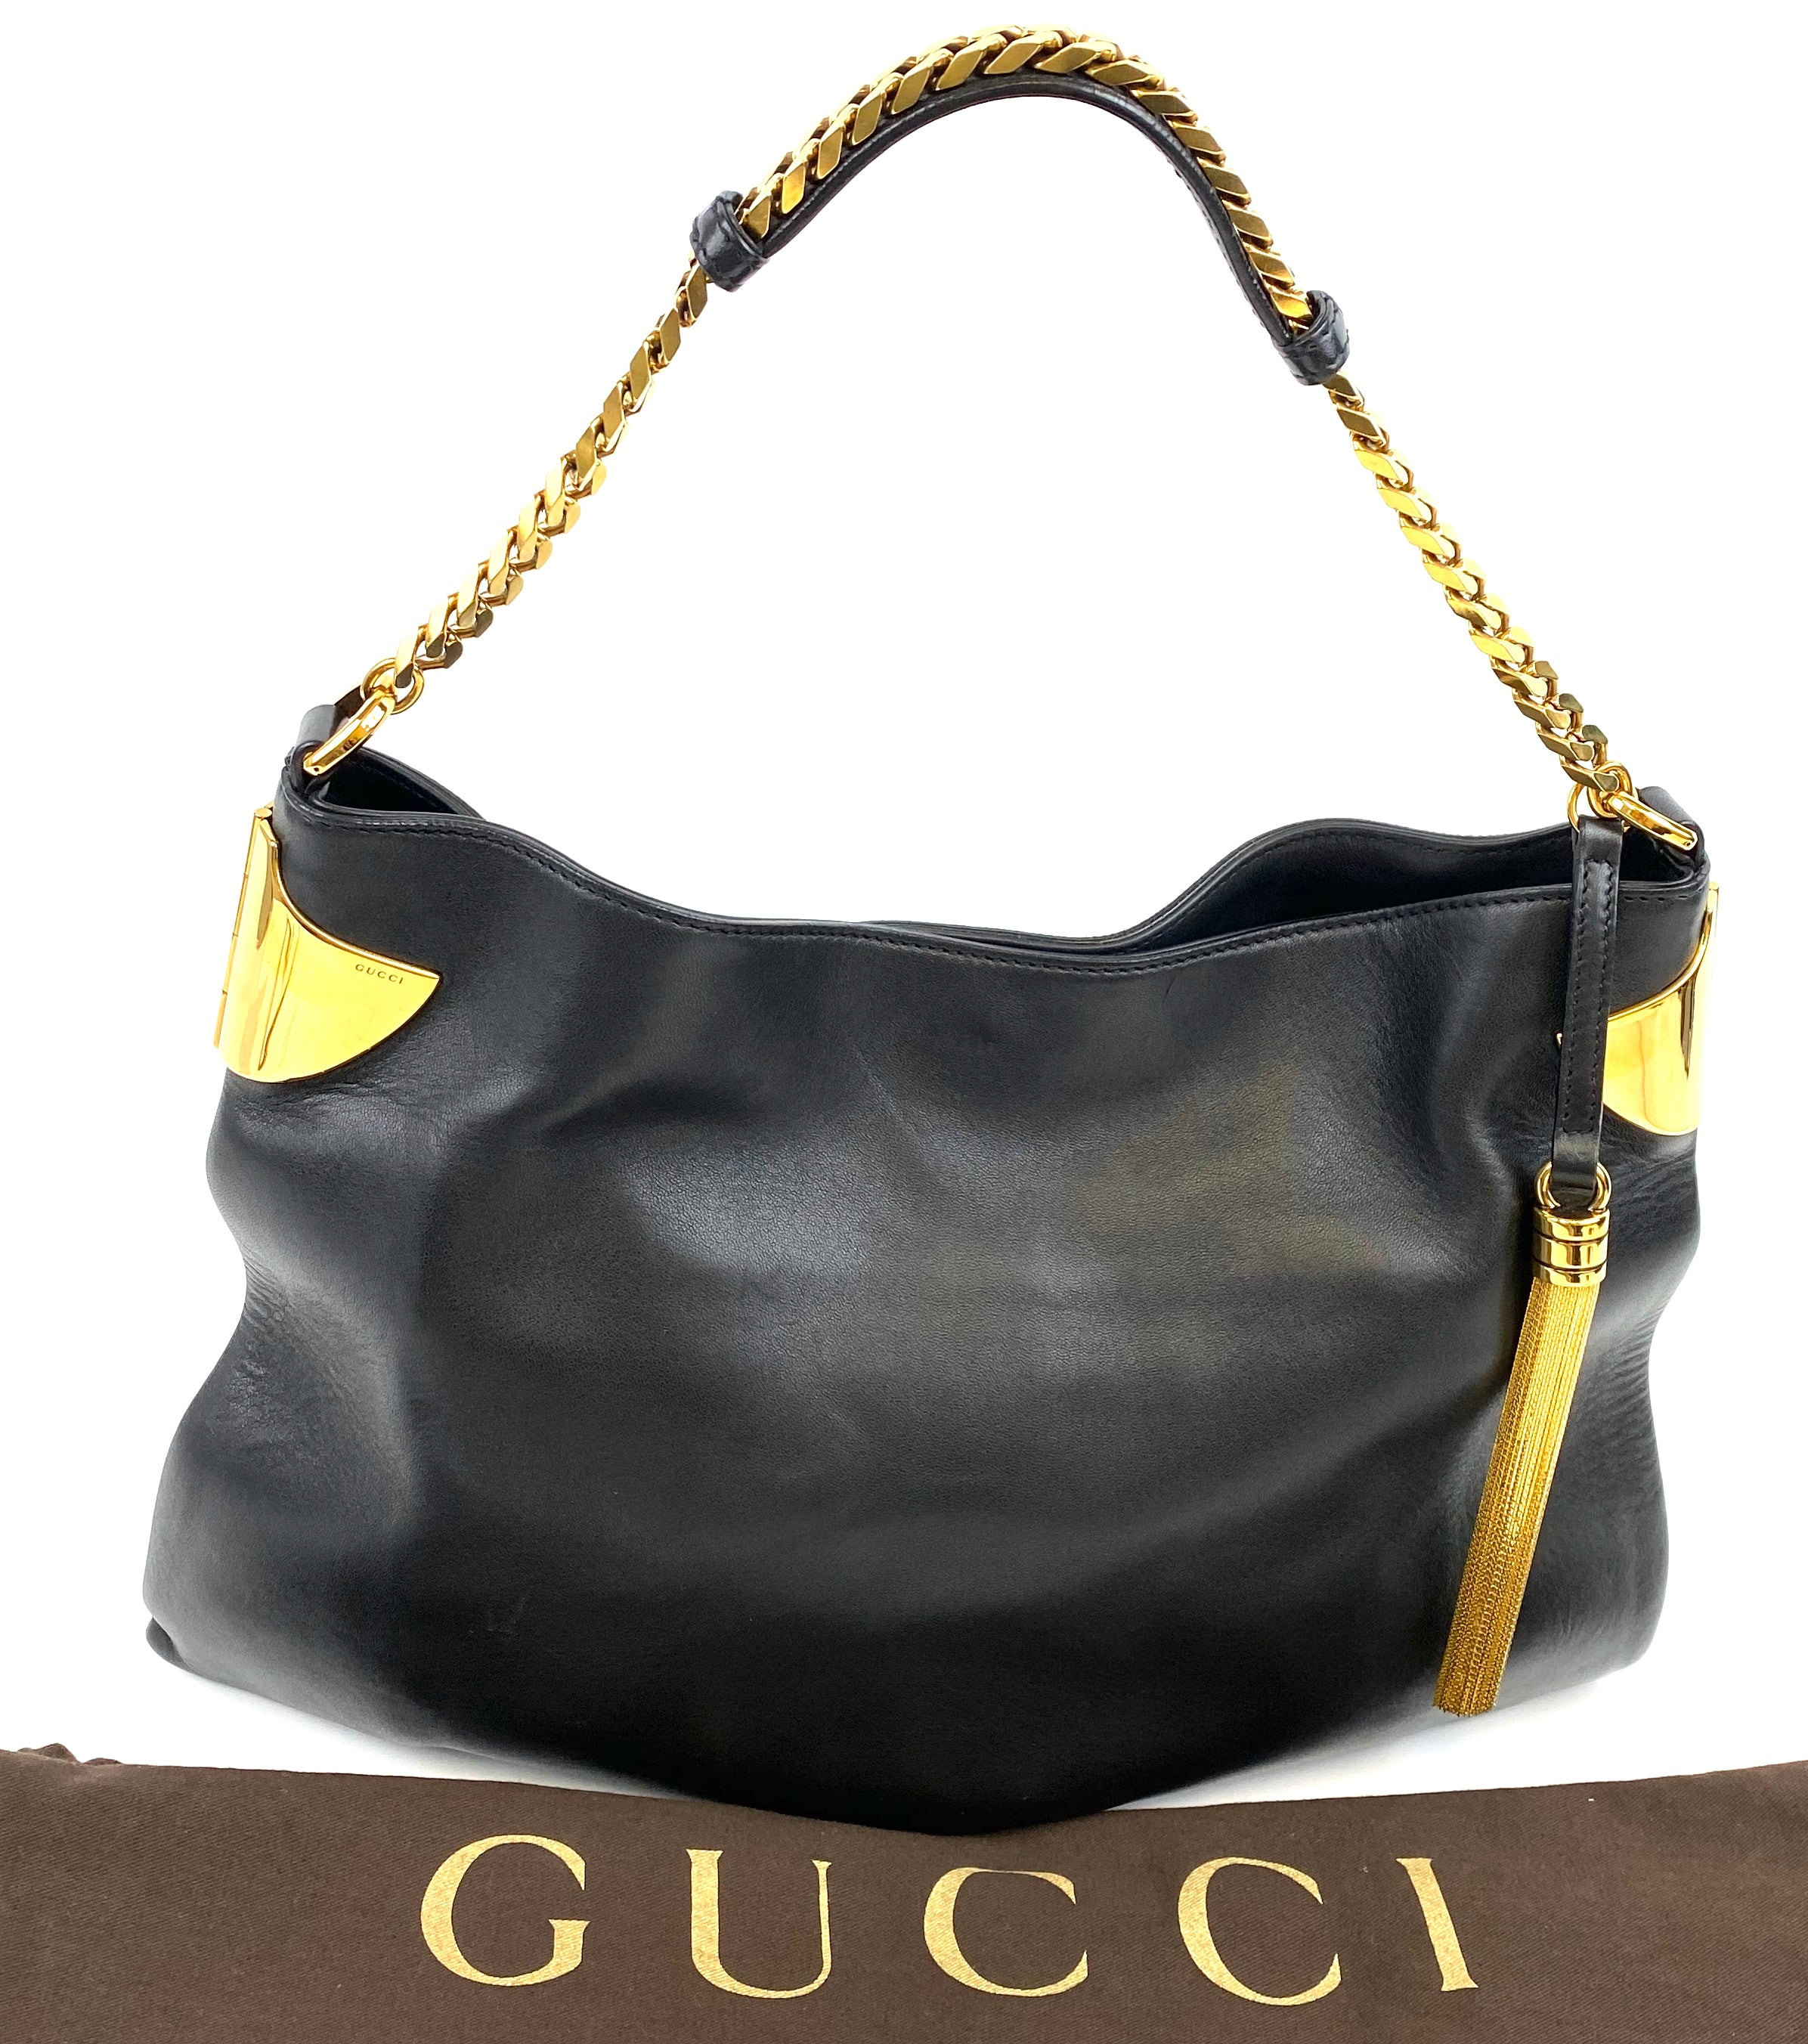 GUCCI 1970 Leather Hobo